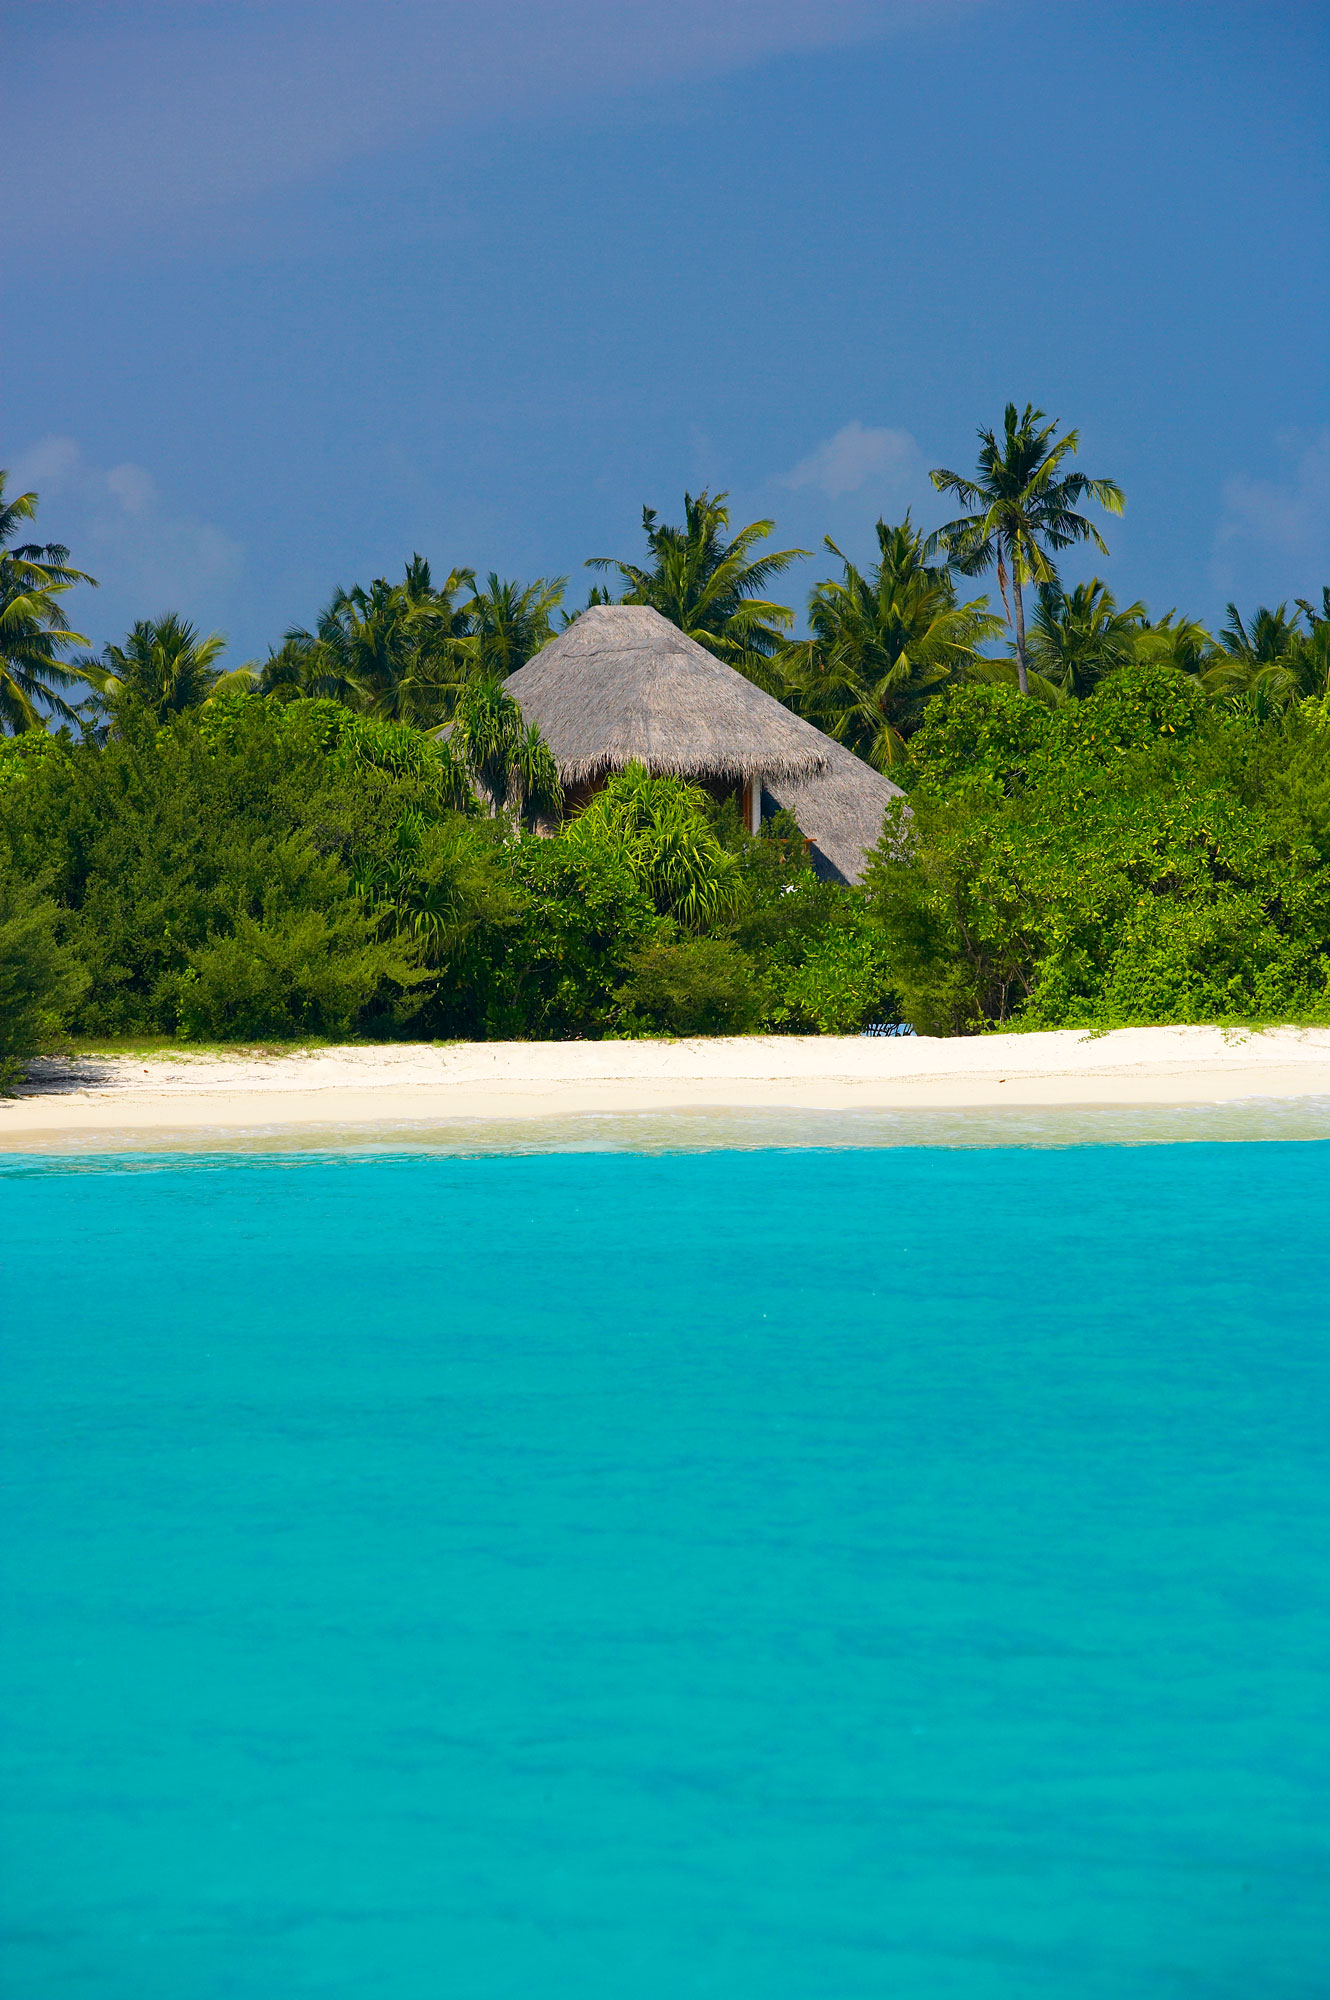 Island-Hideaway-at-Dhonakulhi-Maldives-Spa-Resort-Marina-07